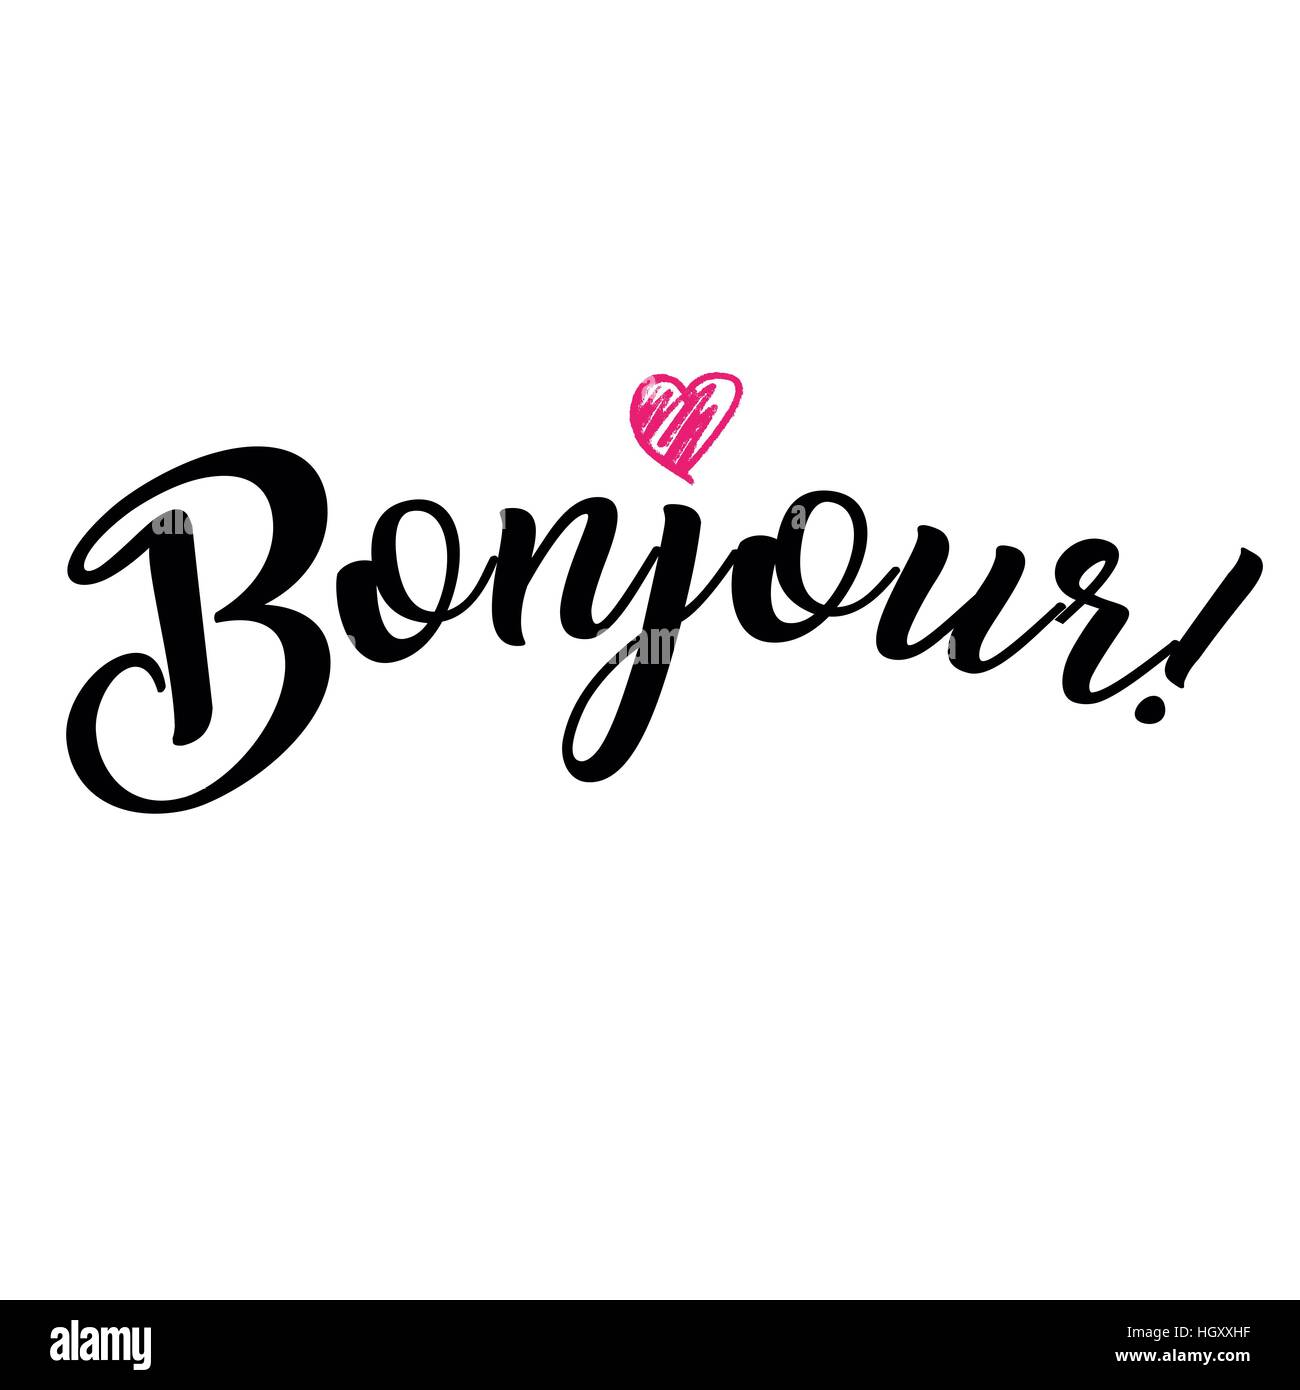 word hello in french bonjour fashionable calligraphy writing clip art images kids Insect Clip Art